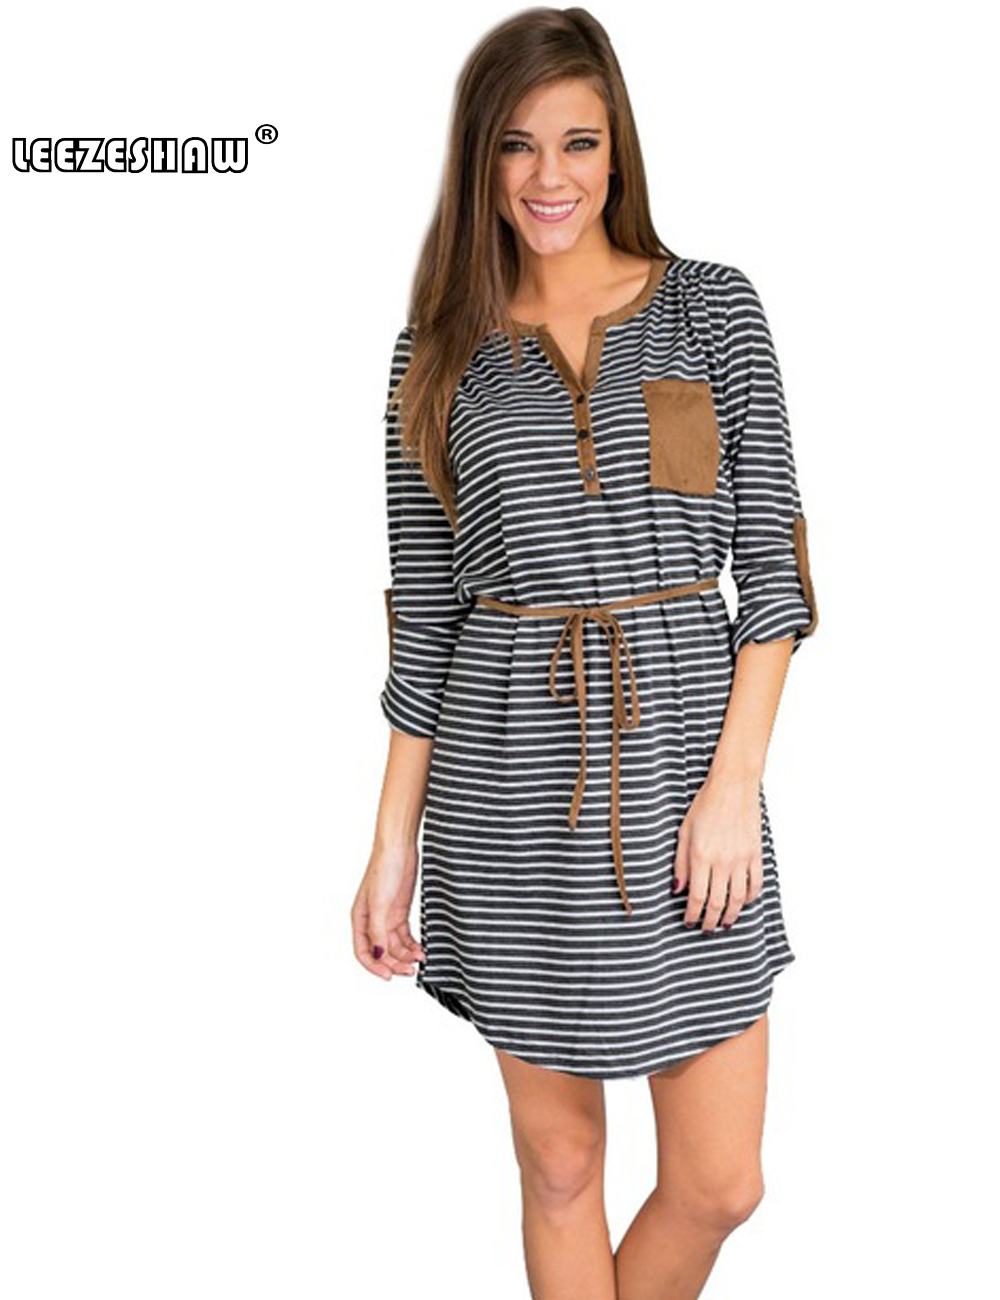 Leezeshaw Casual Striped Dress V Neck Sexy Women Knitted Long Sleeve A-Line Shirt Dress vestidos Belt Tunic Preppy Mini Desses